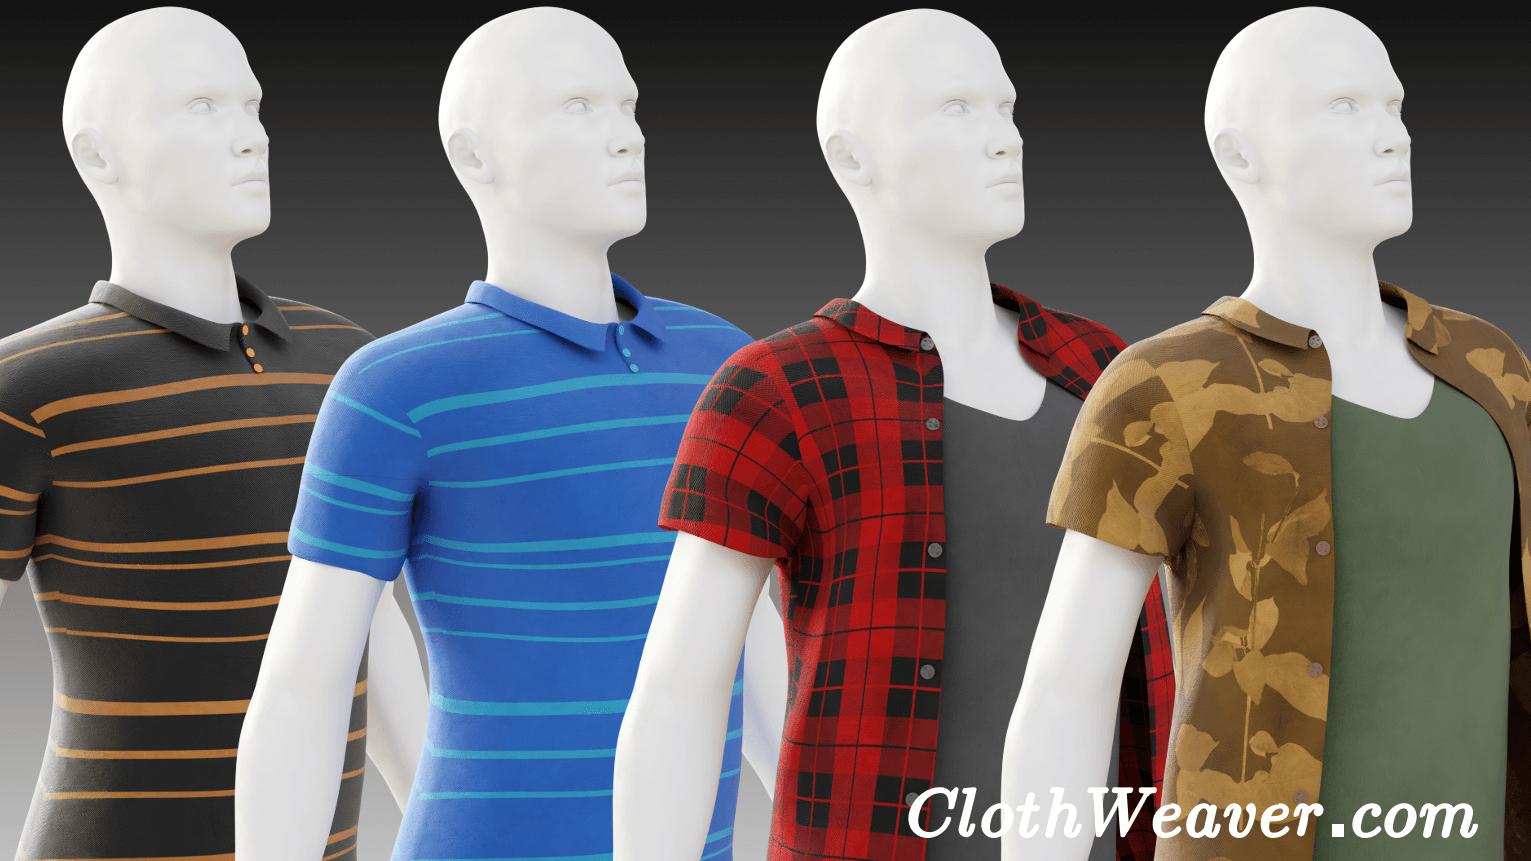 Add-on] Cloth Weaver - Design clothing and accessories for